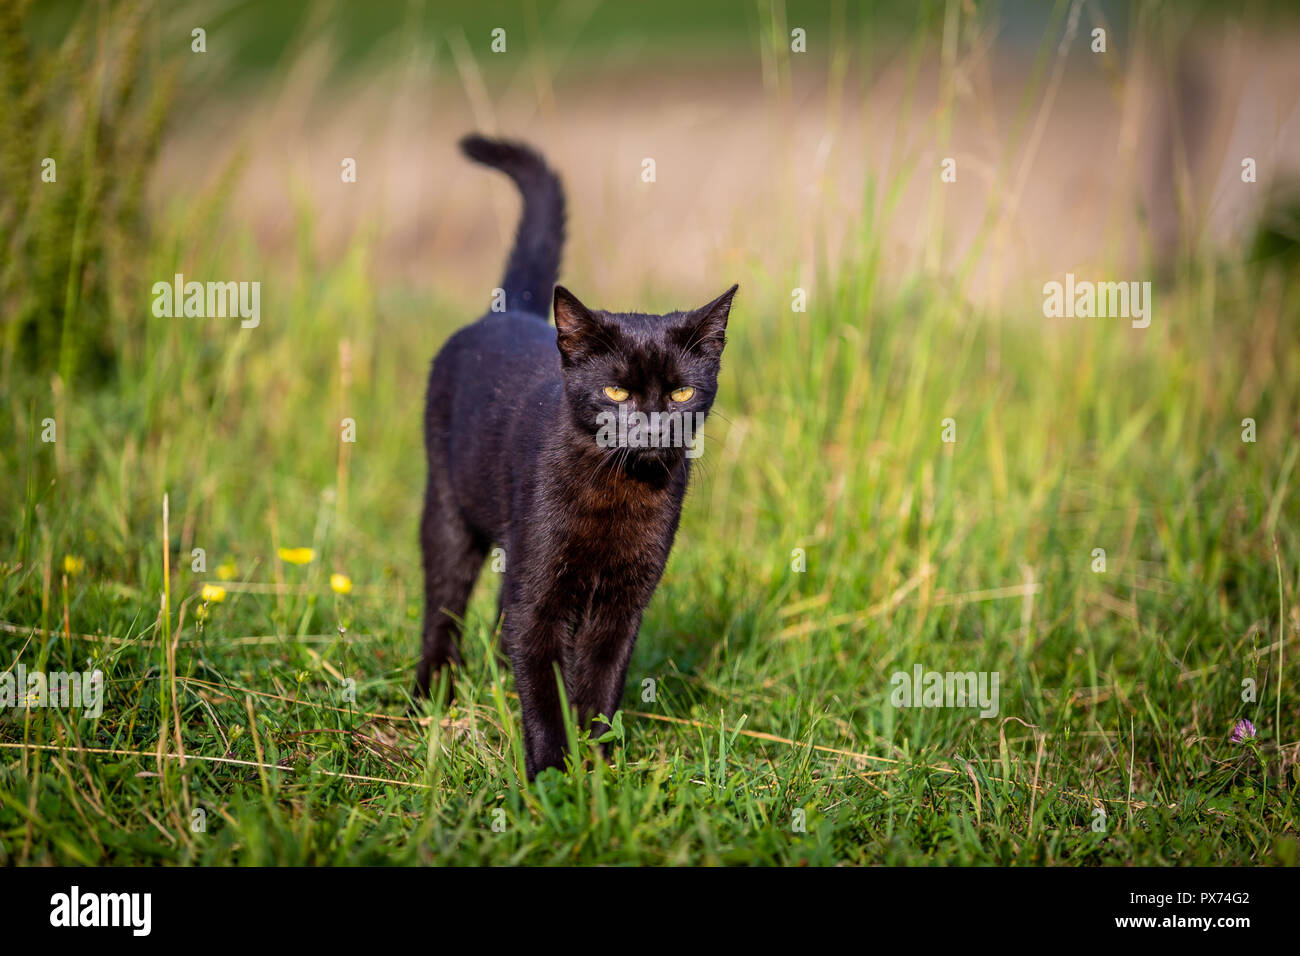 Black devil. nice furry black cat walking and sneaking in the green garden - Stock Image